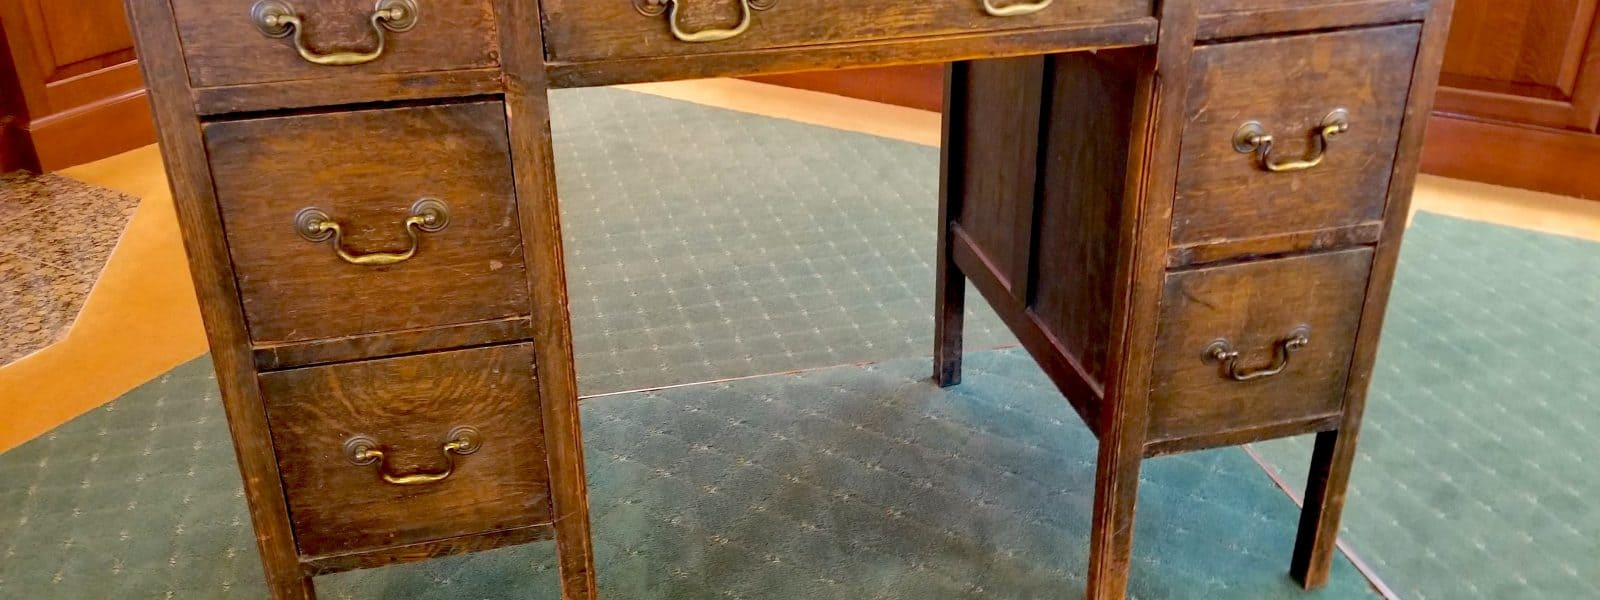 Historical Things to Do in Wheaton, Illinois – C.S. Lewis Wardrobe, J.R.R. Tolkien Desk